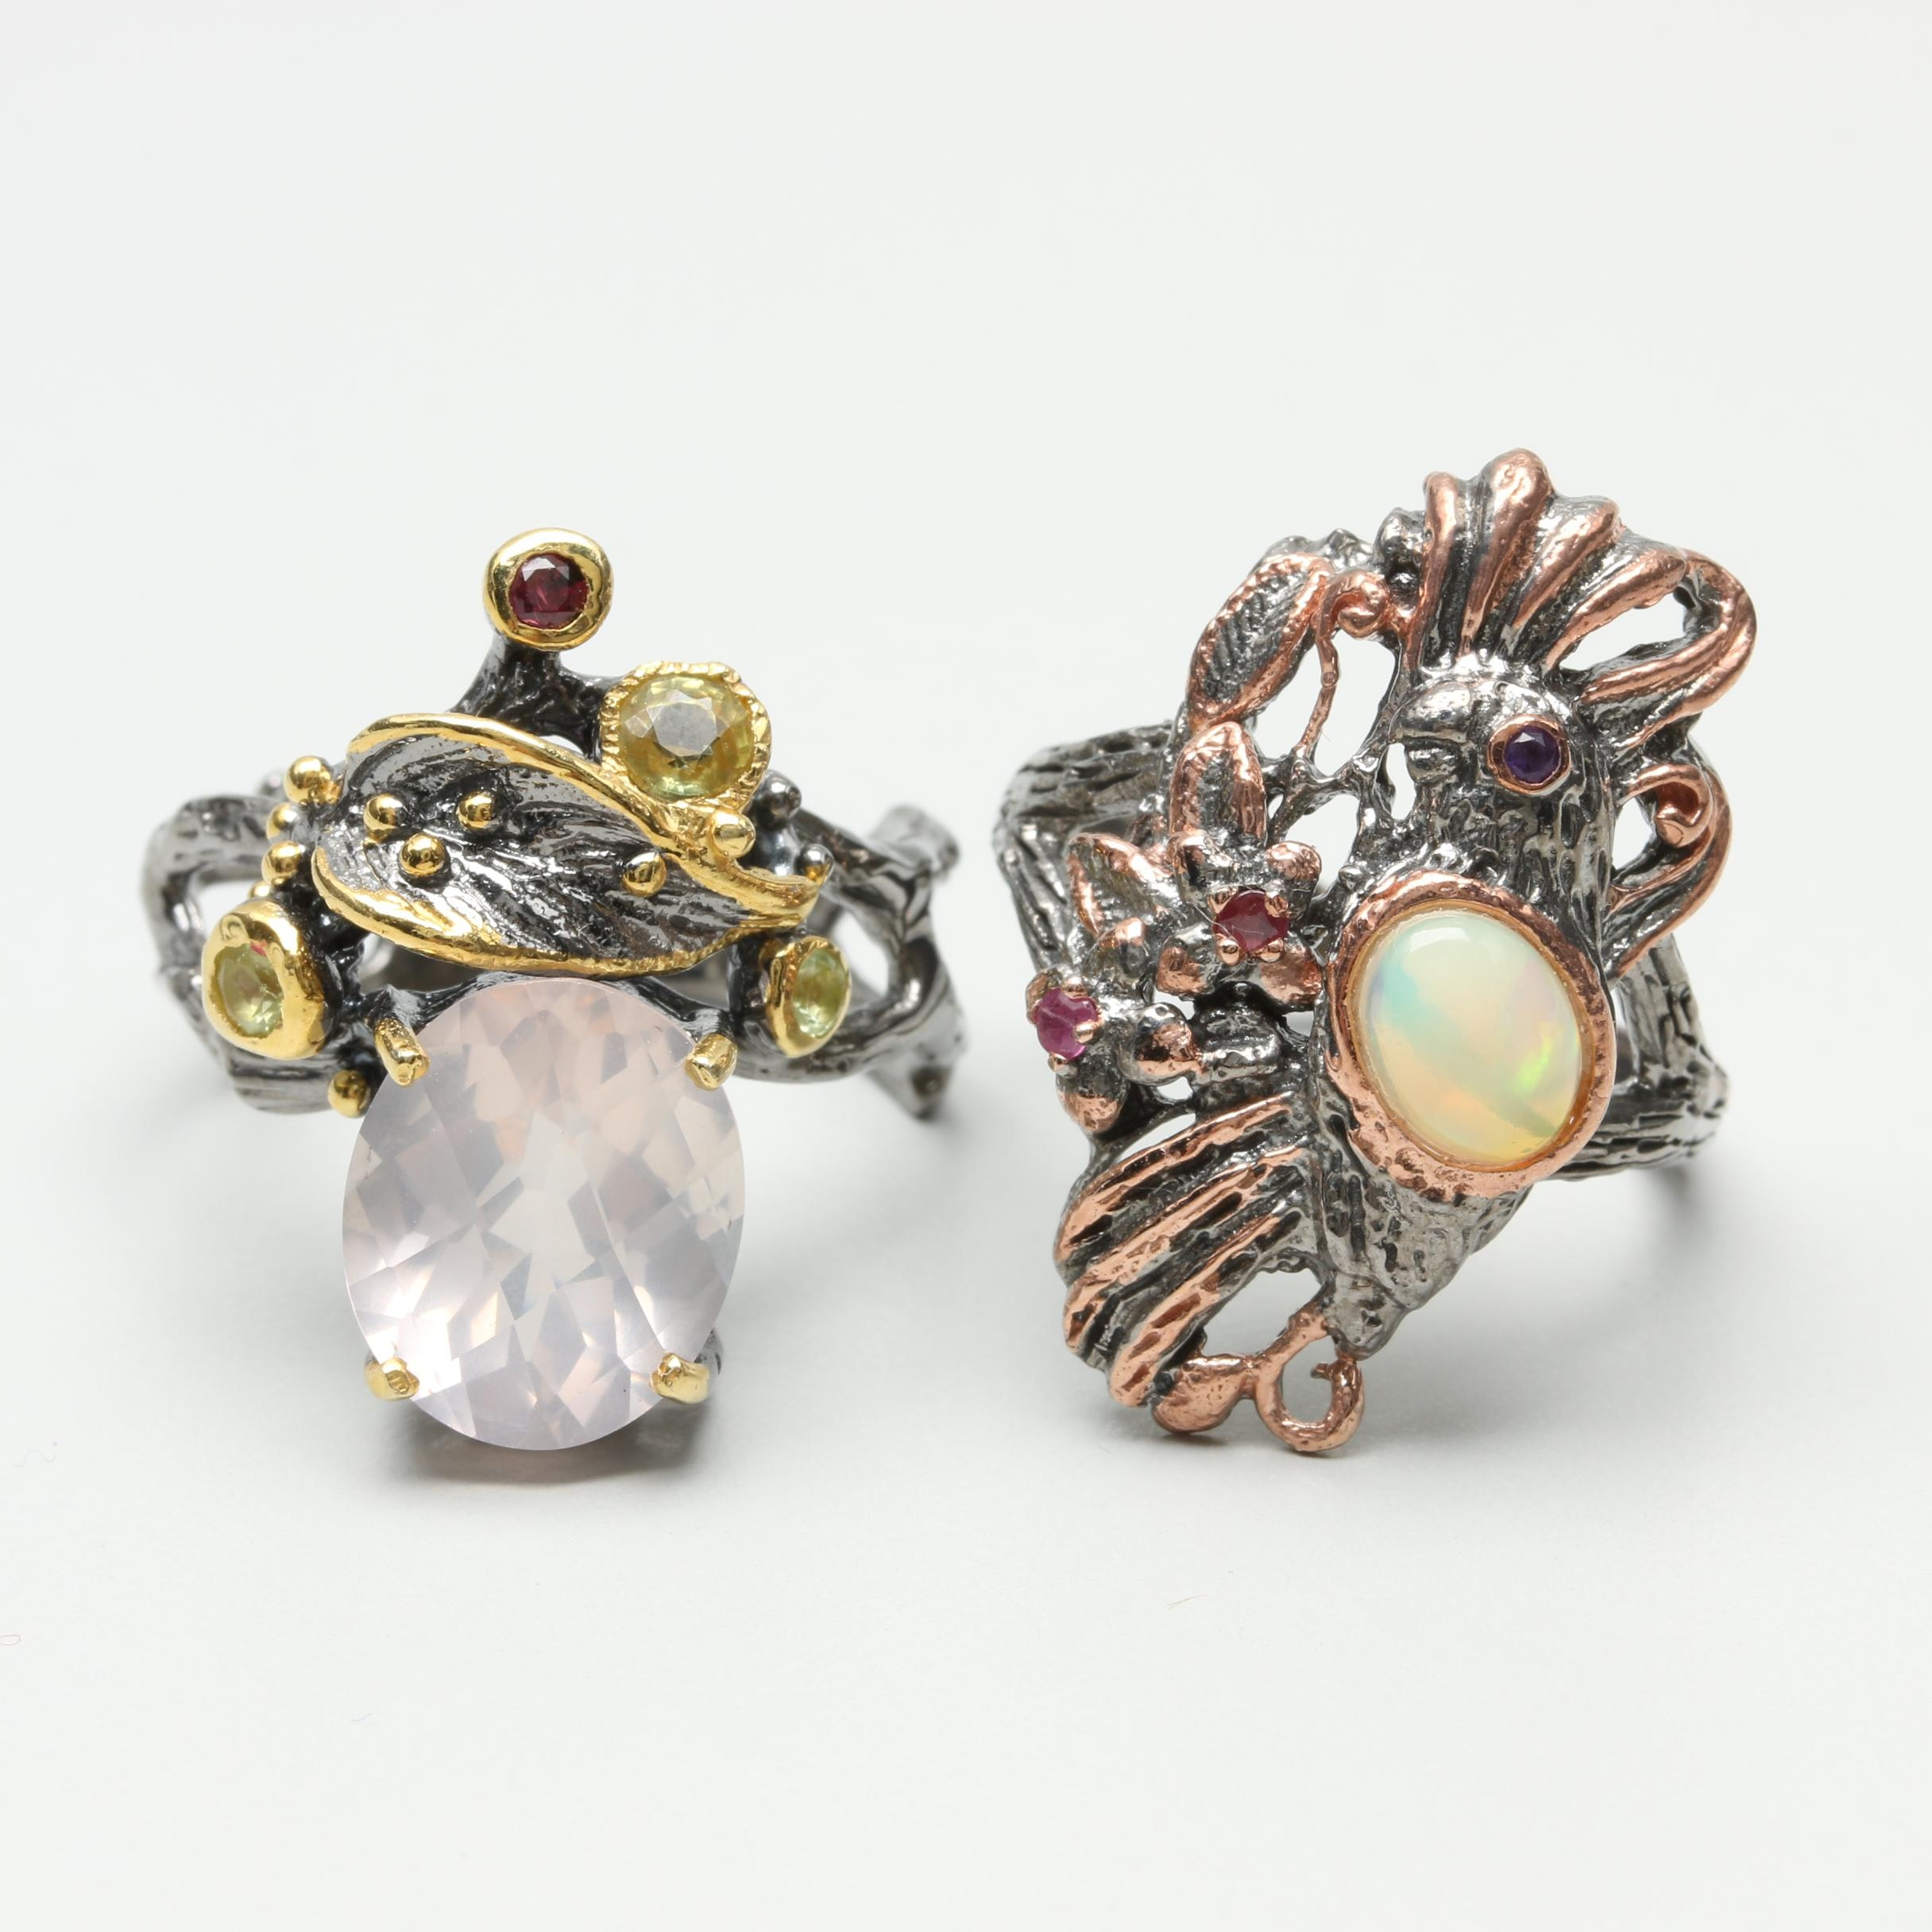 Sterling Silver Rings Featuring Opal and Rose Quartz